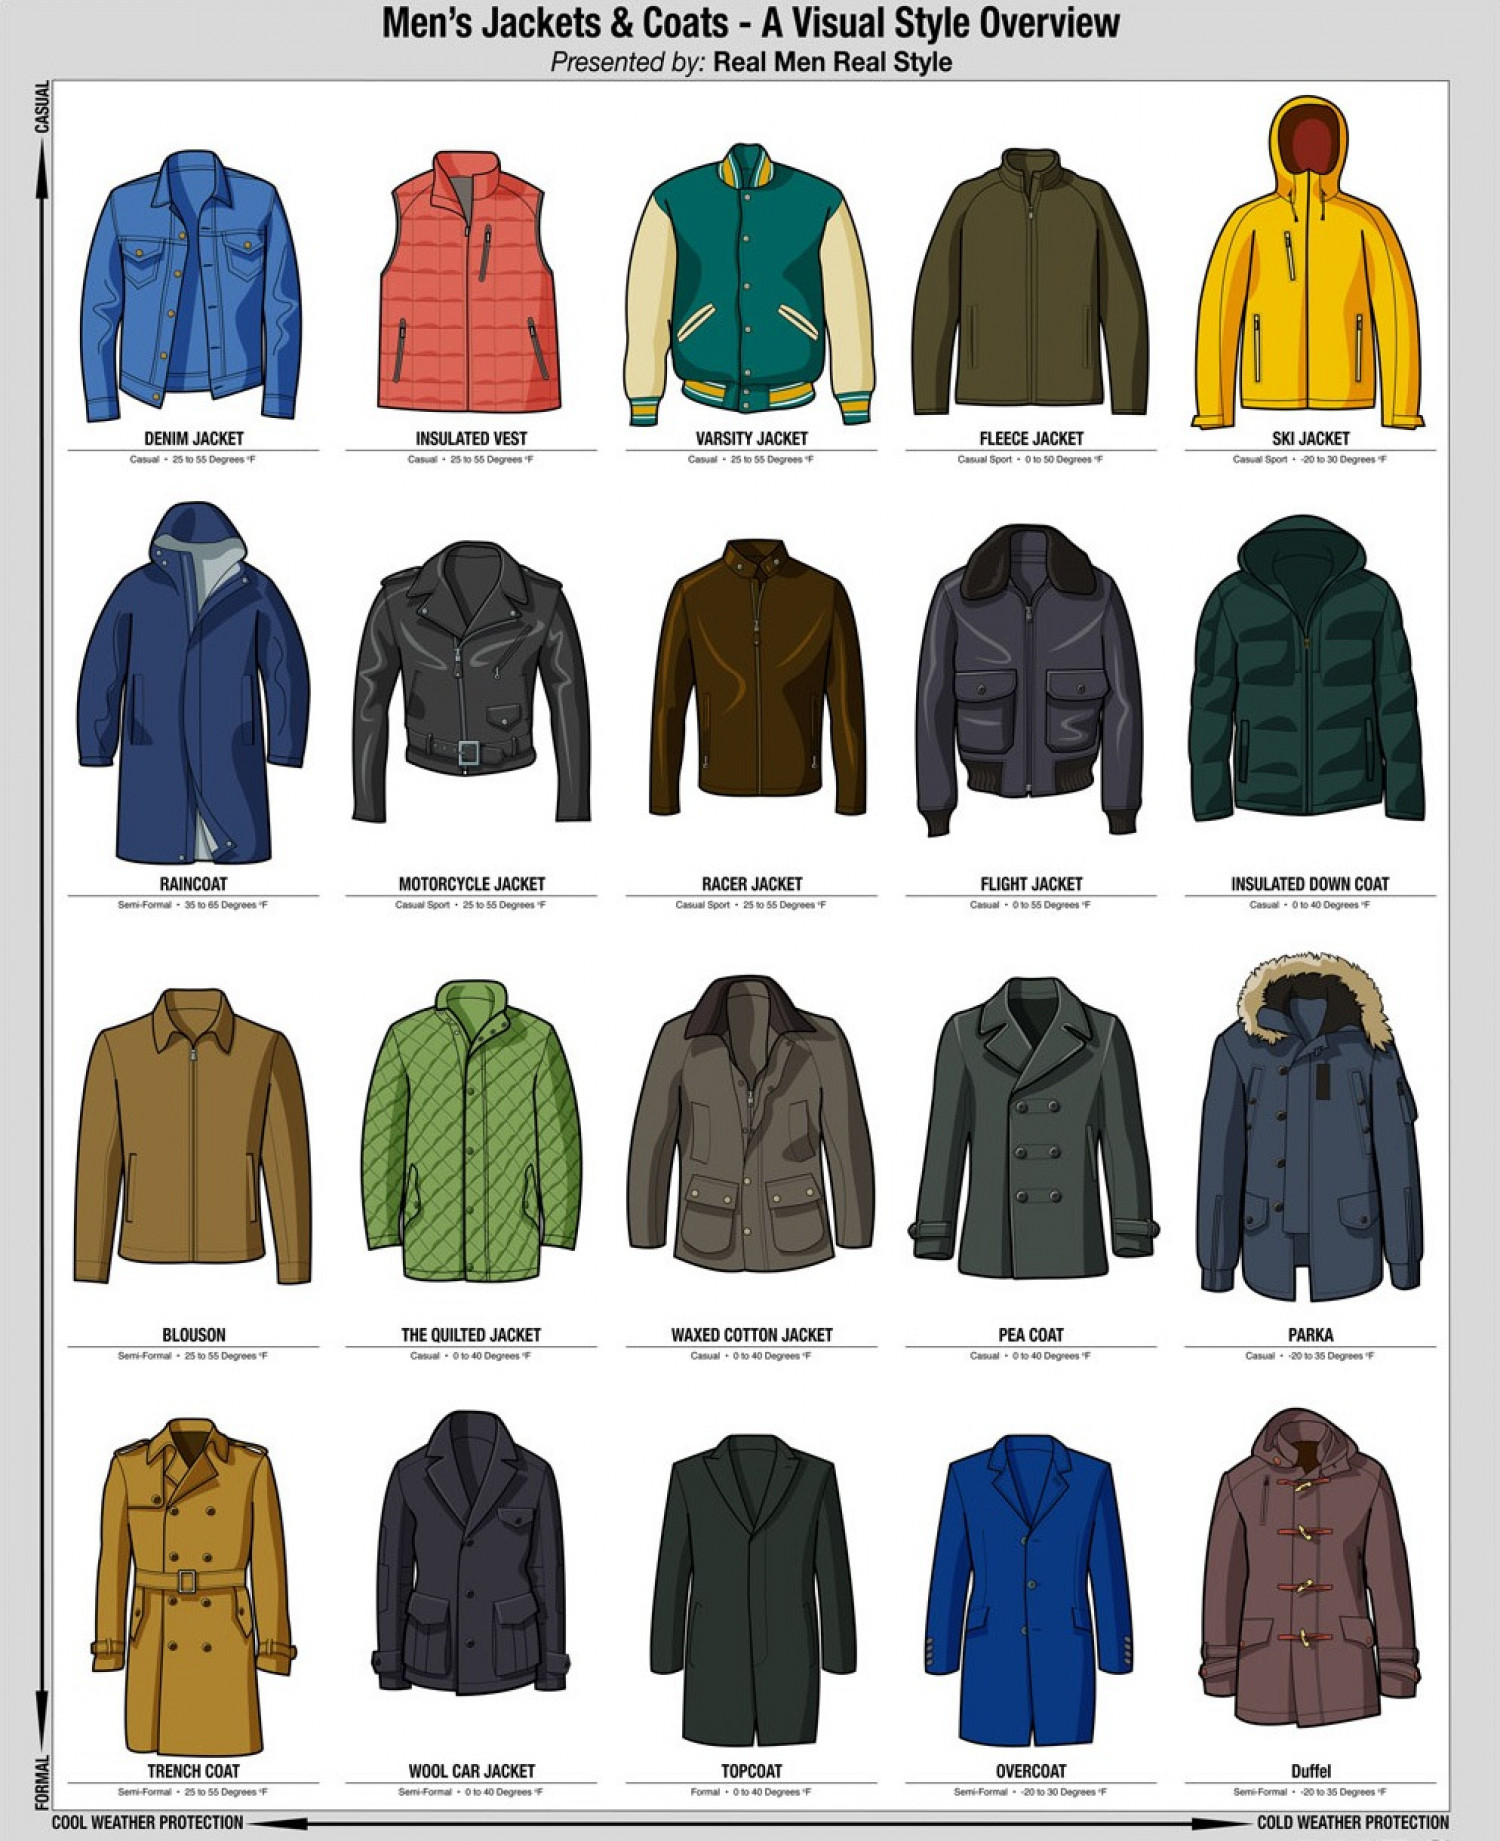 4d13f50cd267 Men's Jackets and Coats a Visual Overview Infographic